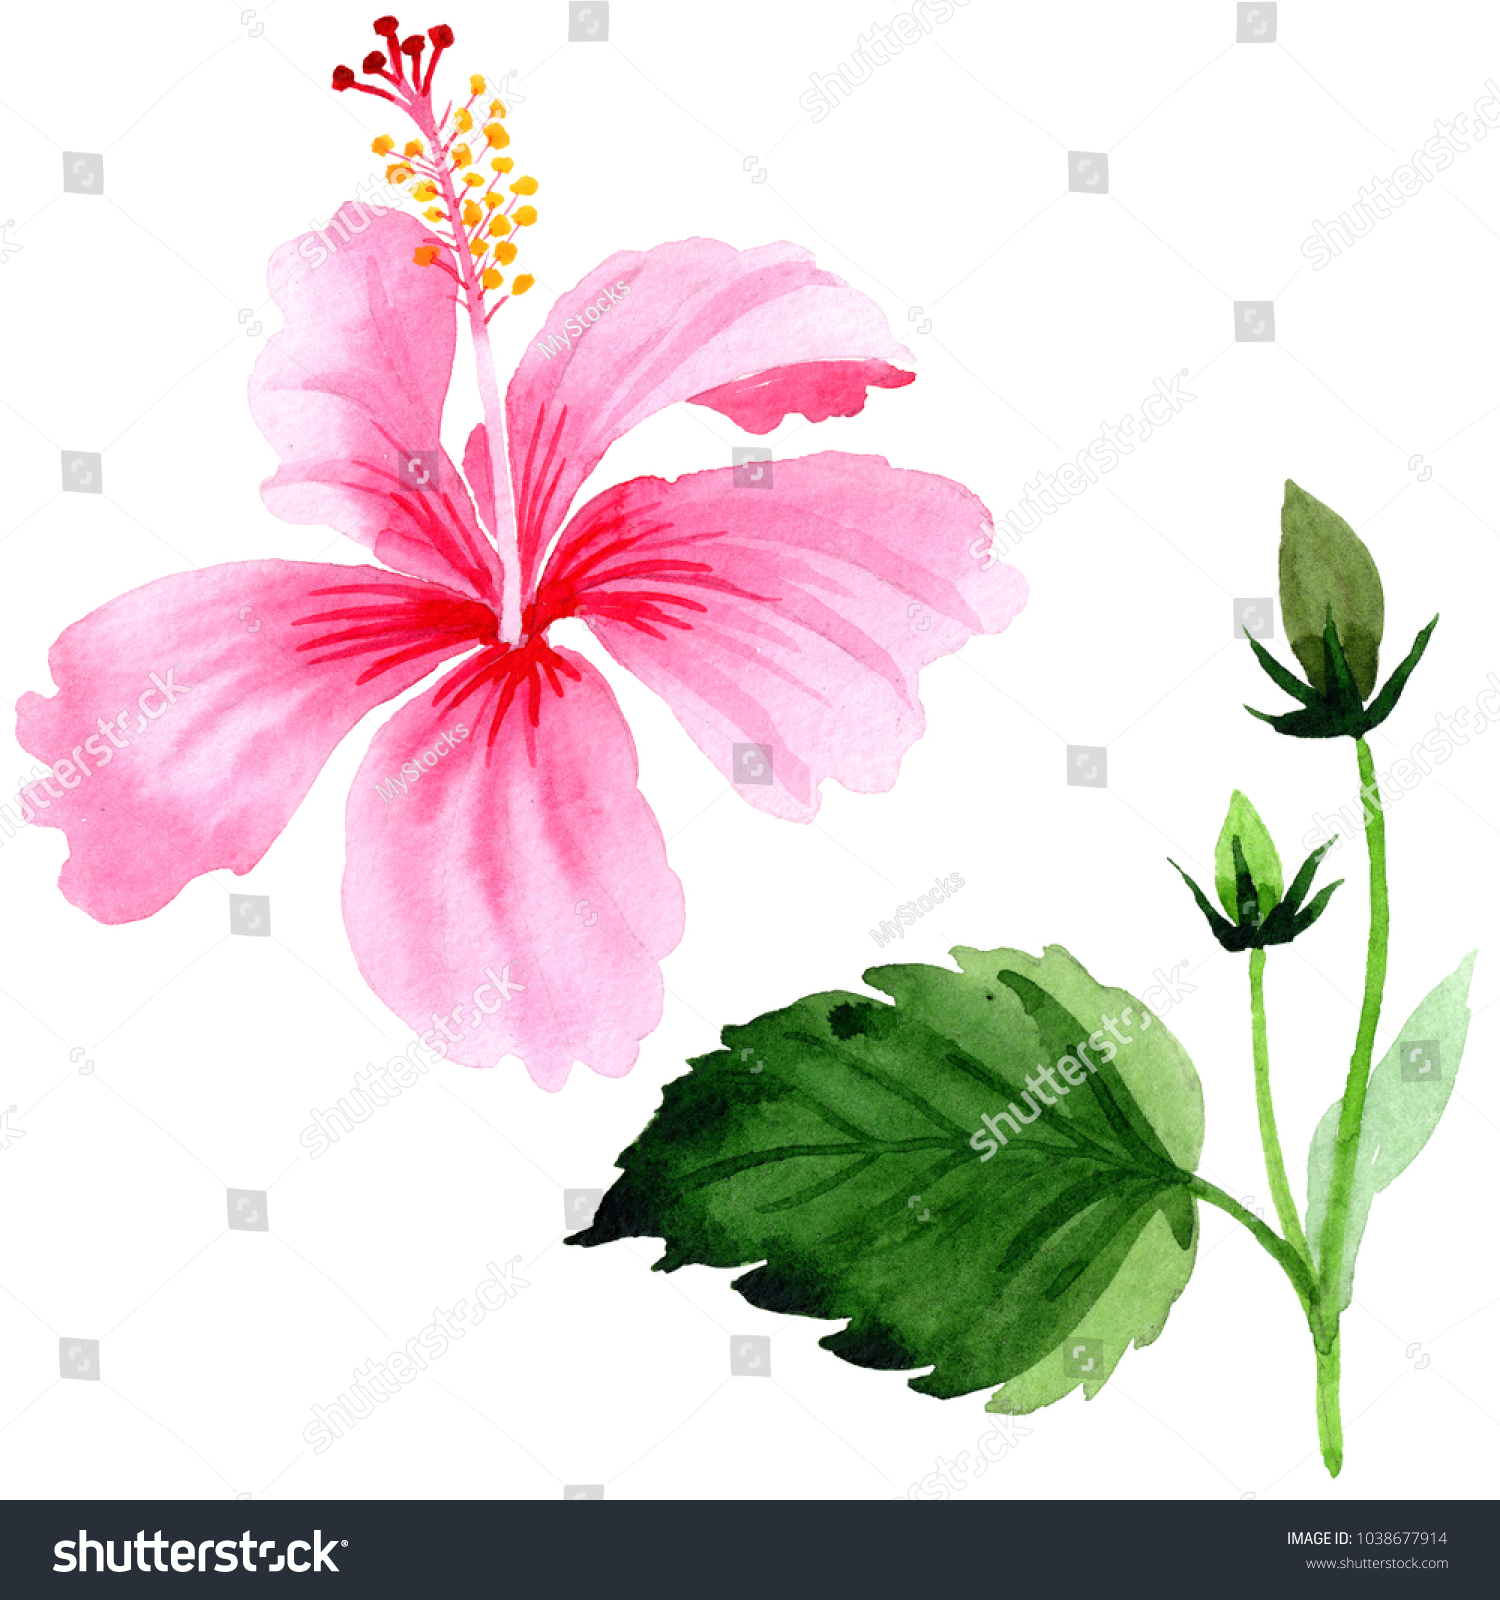 Royalty free stock illustration of wildflower hibiscus pink flower wildflower hibiscus pink flower in a watercolor style isolated full name of the plant izmirmasajfo